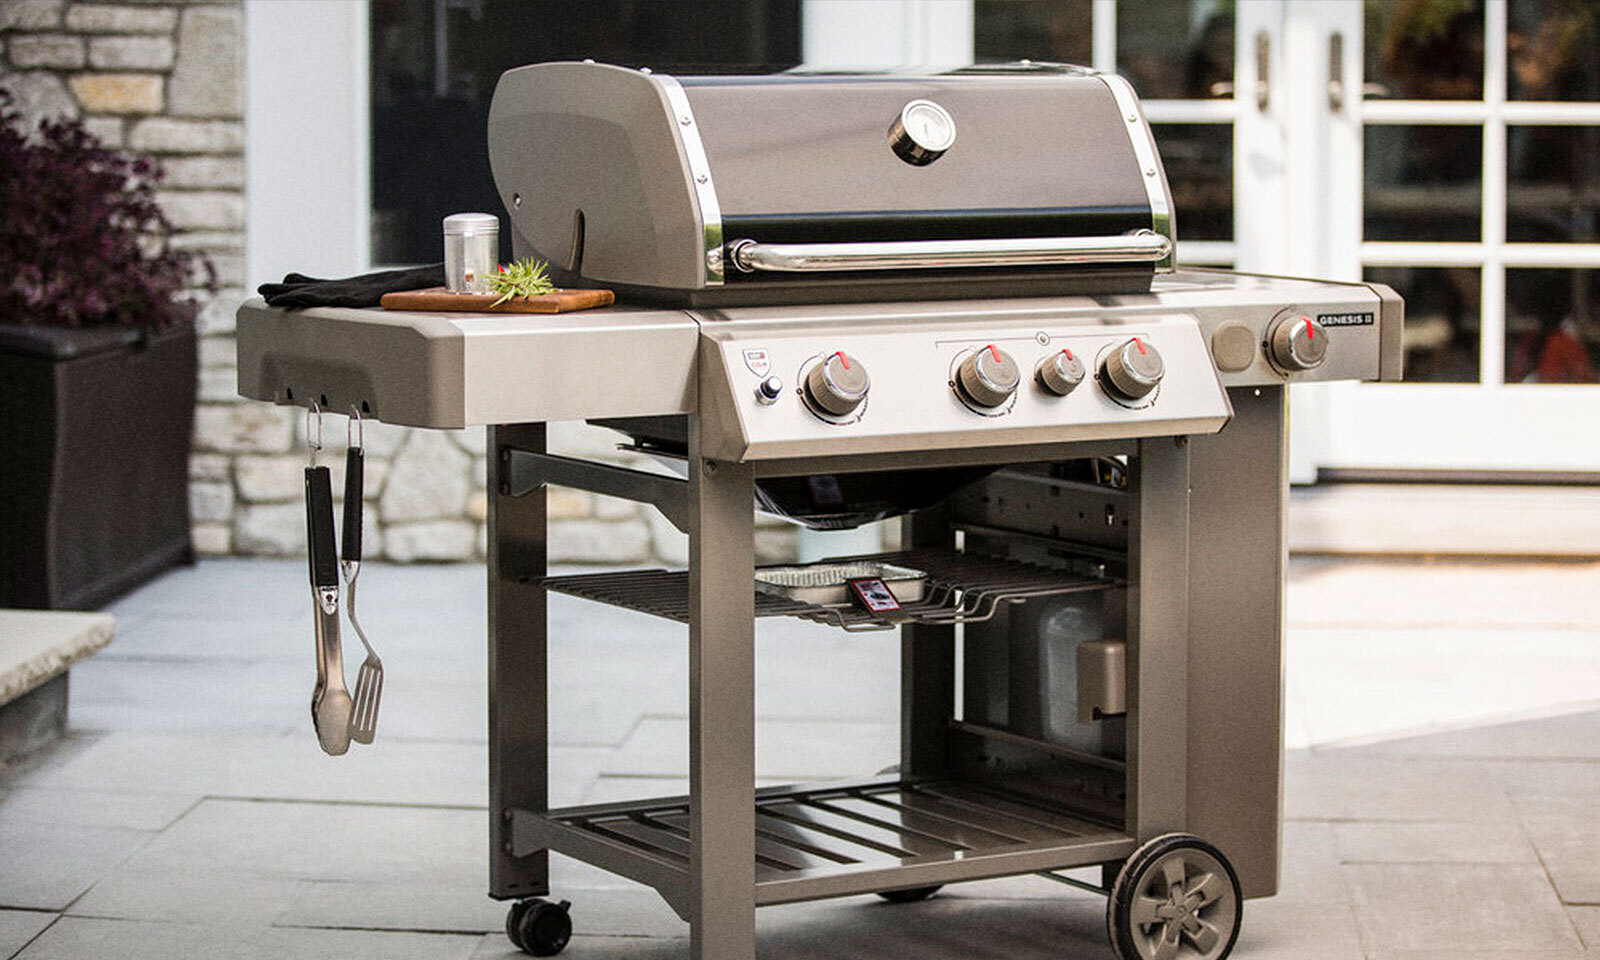 Jeeves Grill Rental